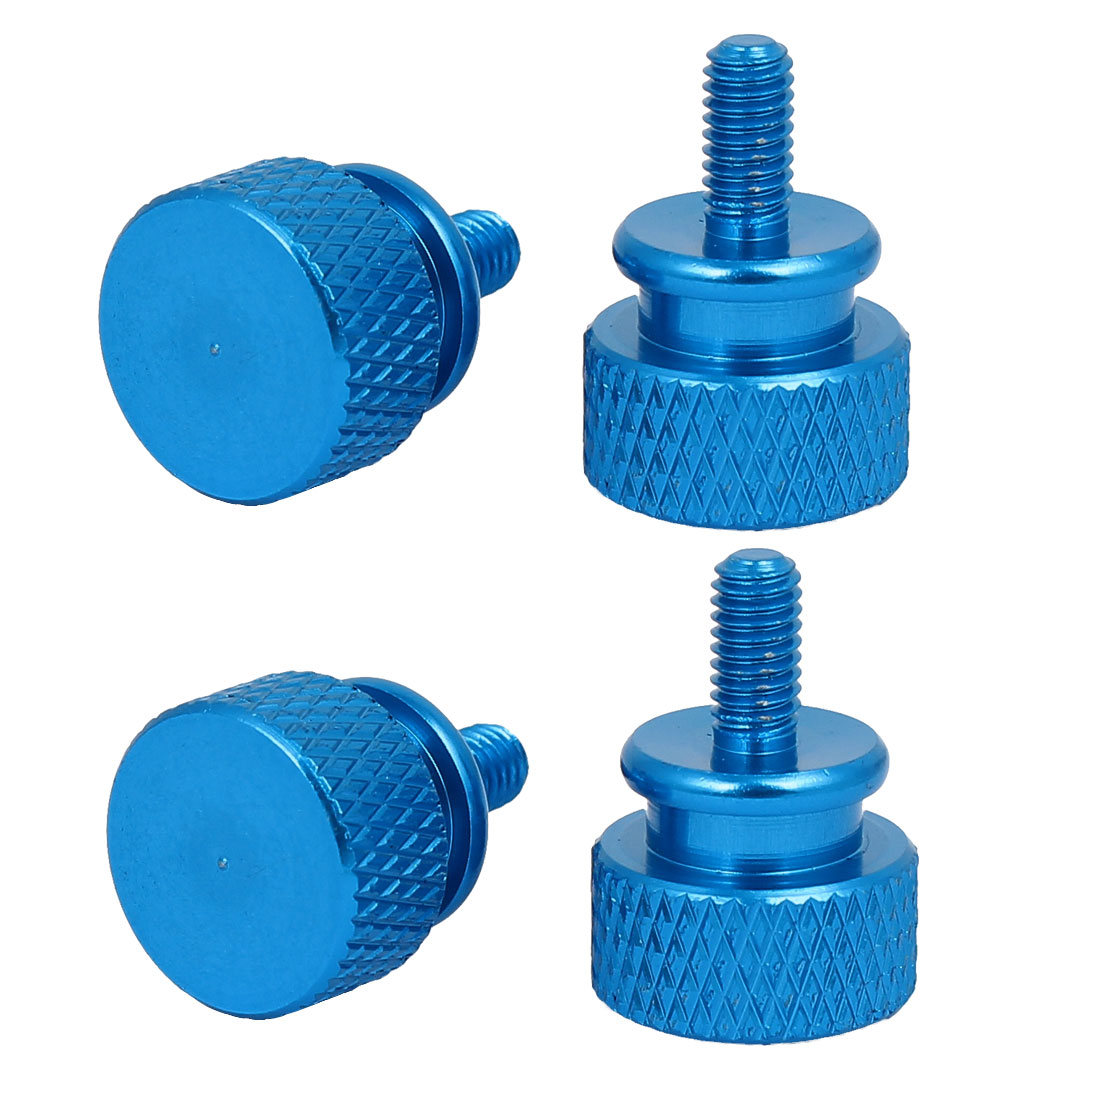 Computer PC Case Fully Threaded Knurled Thumb Screws Sky Blue M3.5x7mm 4pcs